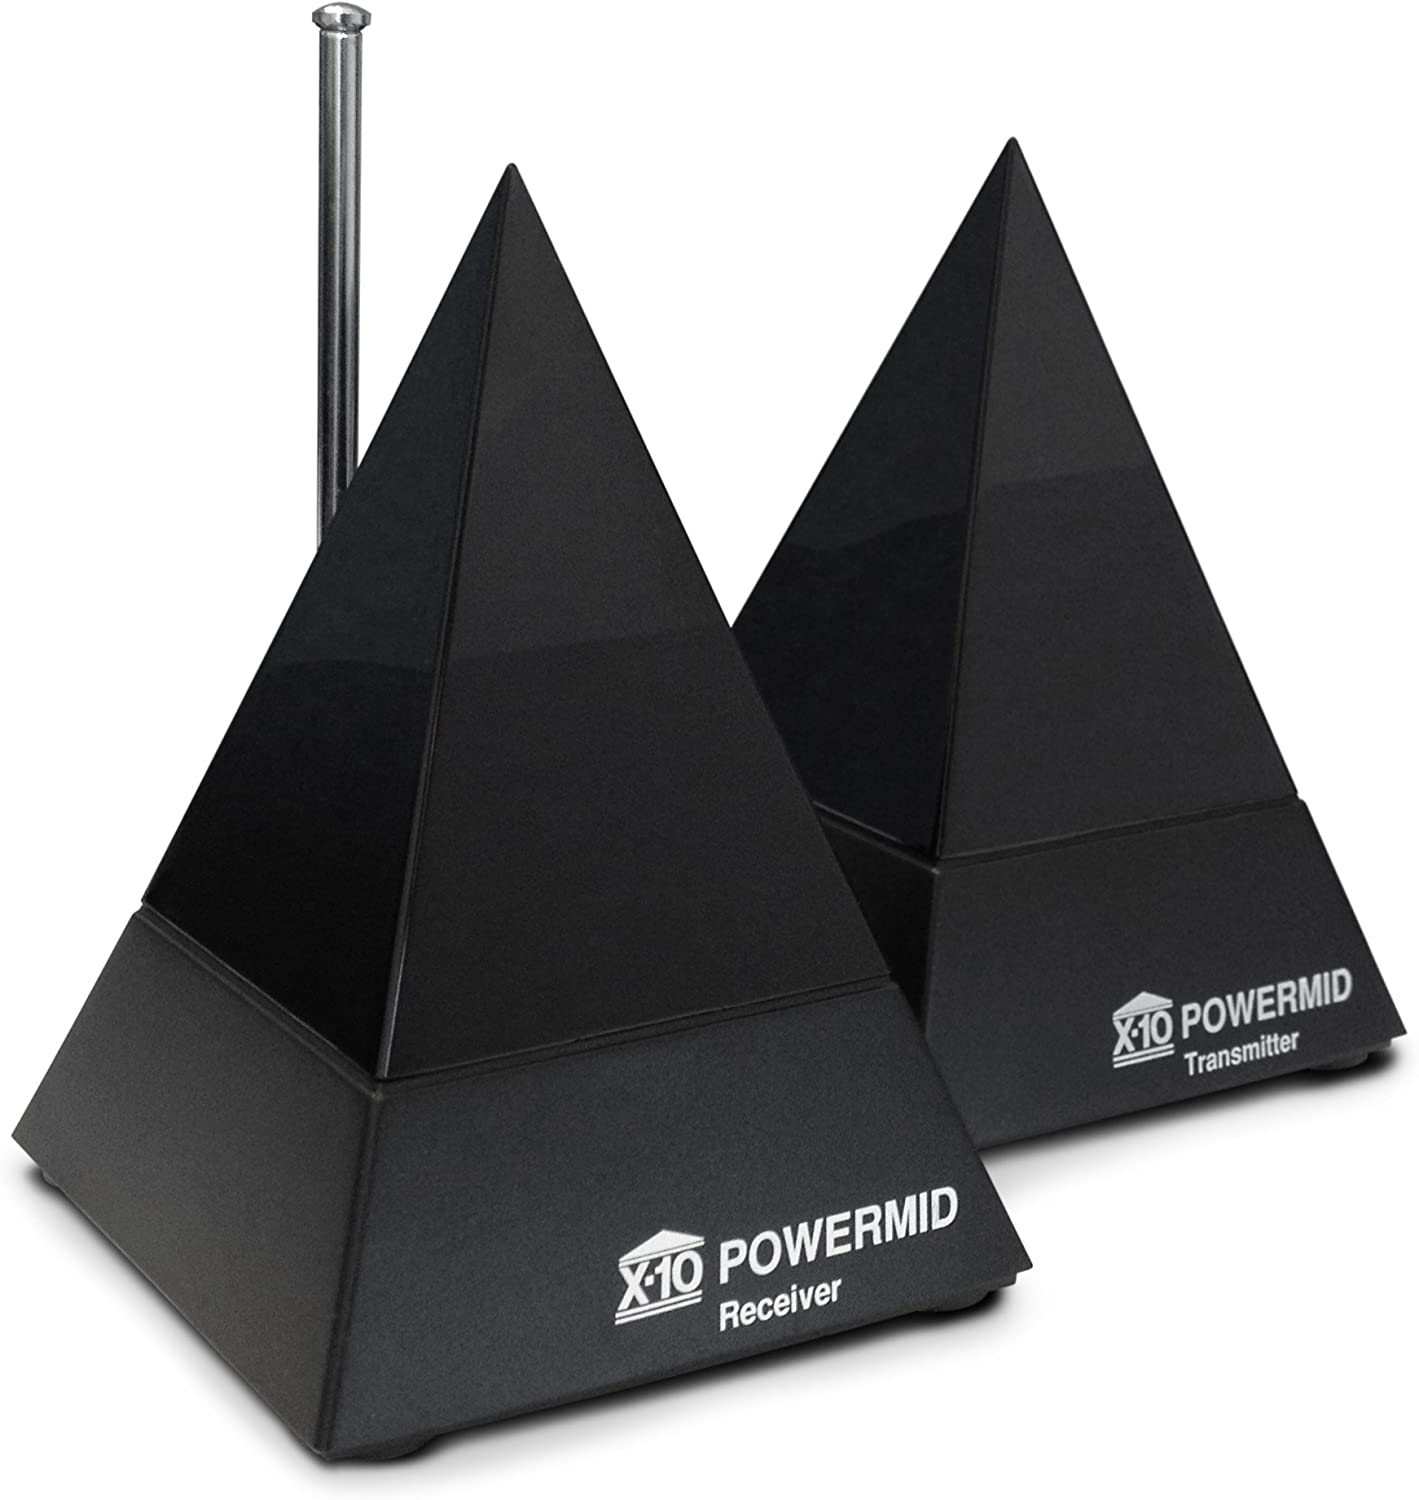 Includes a Transmitter and Receiver X10 Powermid PM5900 Remote Control Extender Kit Infrared Only No Video